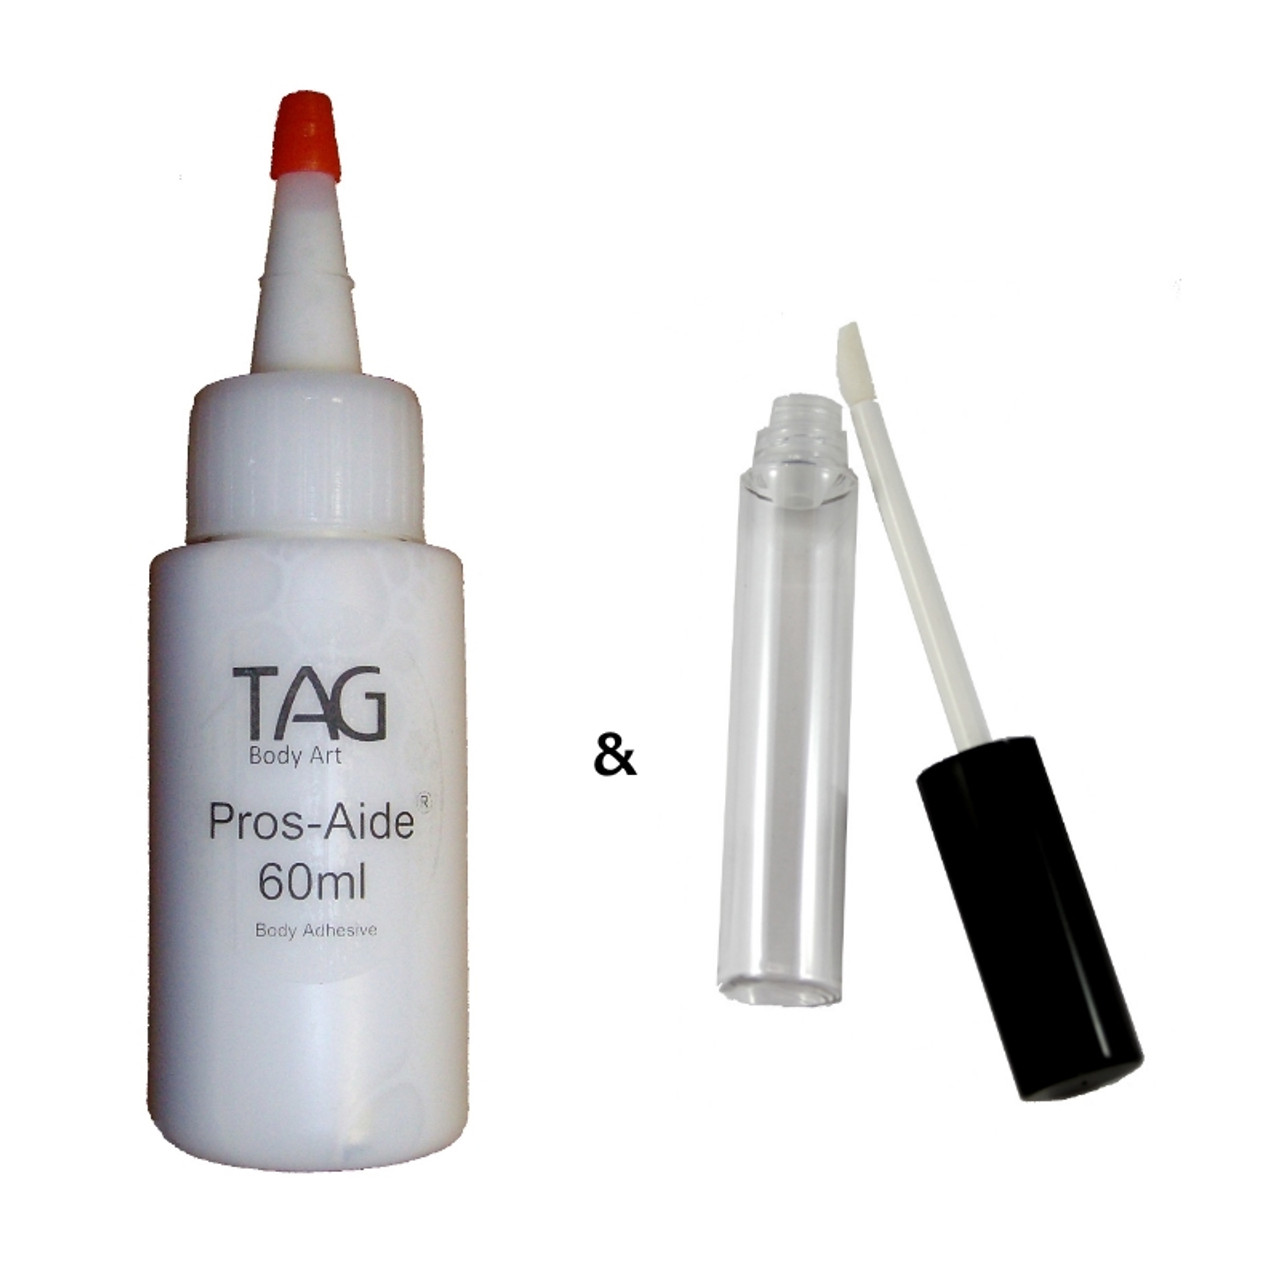 Pros Aide Cosmetic Adhesive Body Glue 60ml Refill Bottle Tag Face Paint Shop Australia